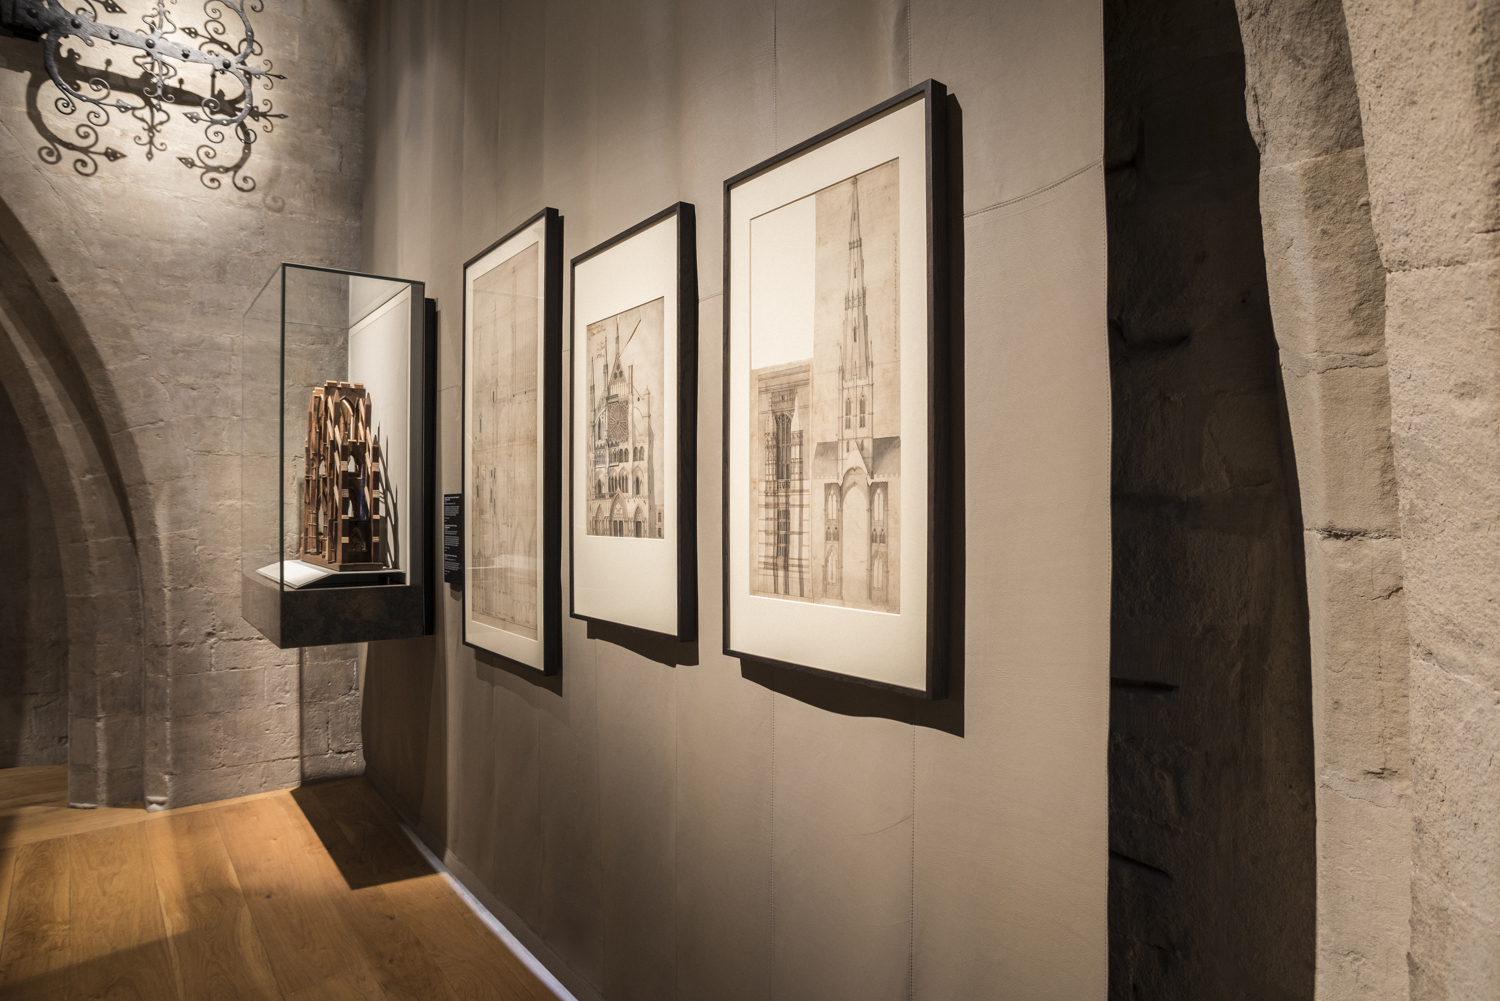 Paintings and artefacts on display in the Triforium.